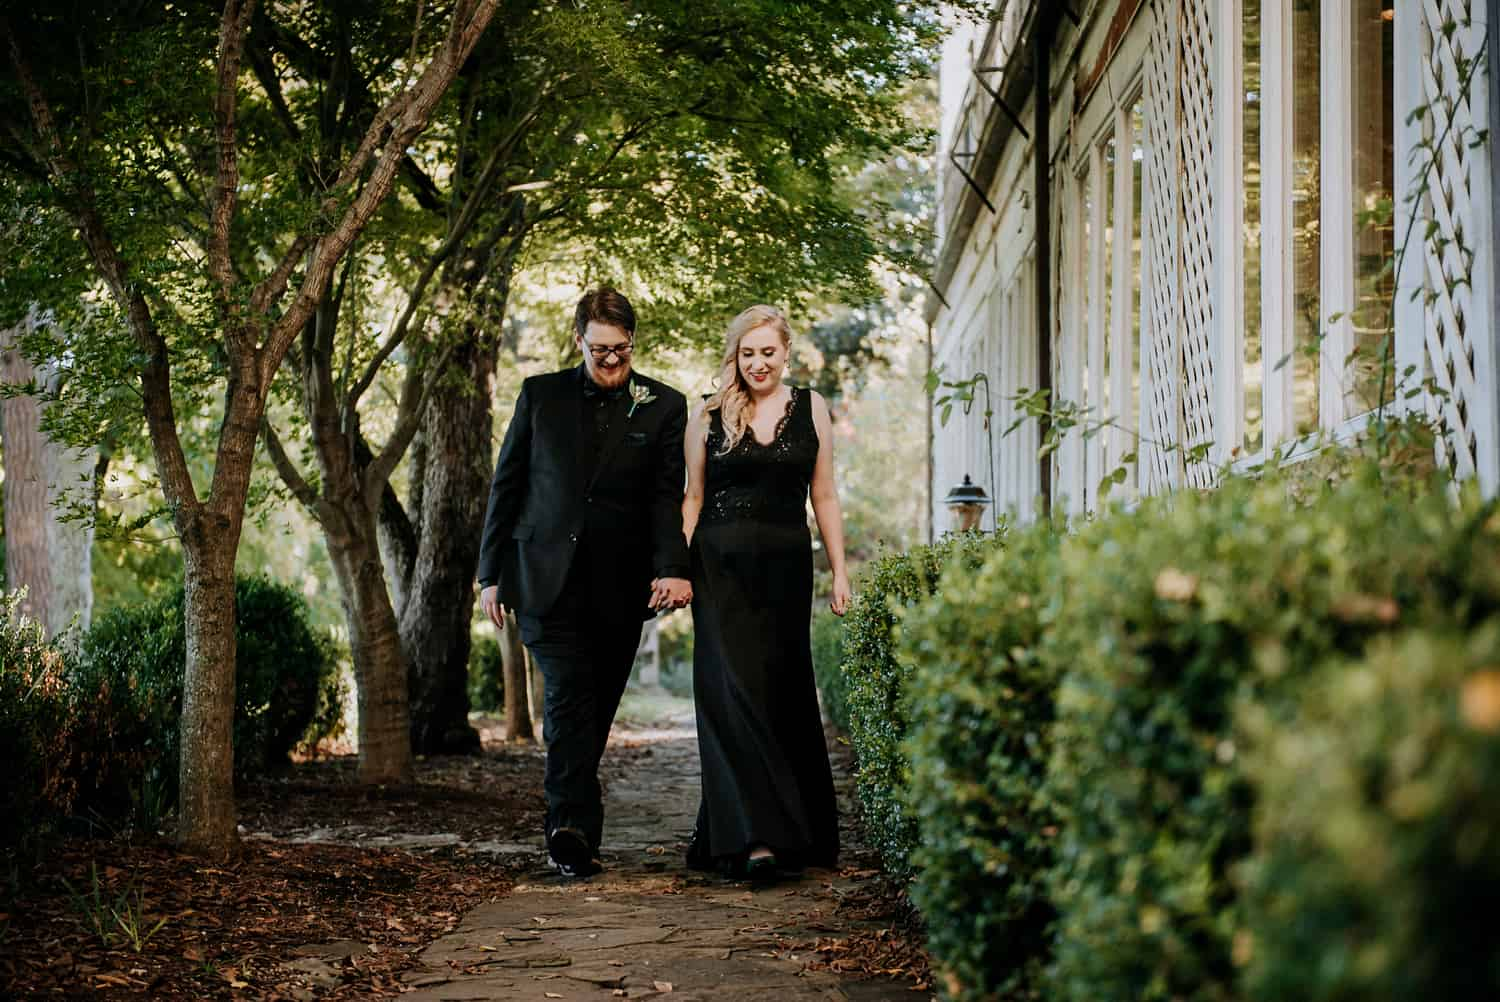 Bride and groom walking holding hands at Crescent Hotel in Eureka Springs